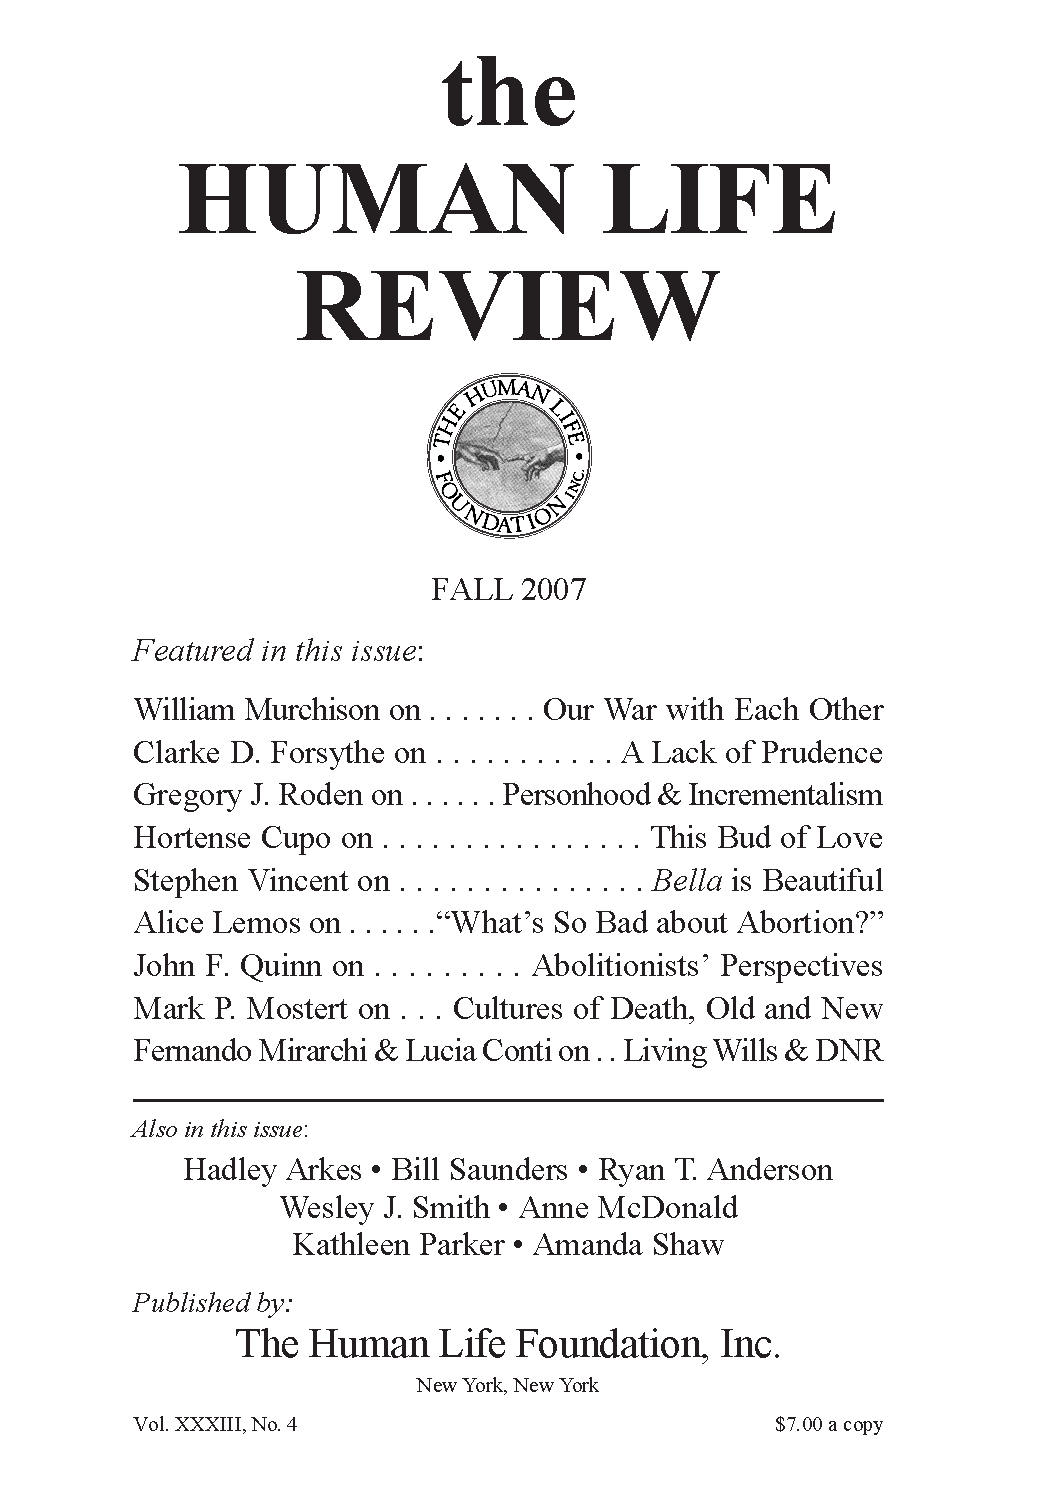 The Human Life Review Fall 2007 - The Human Life Review